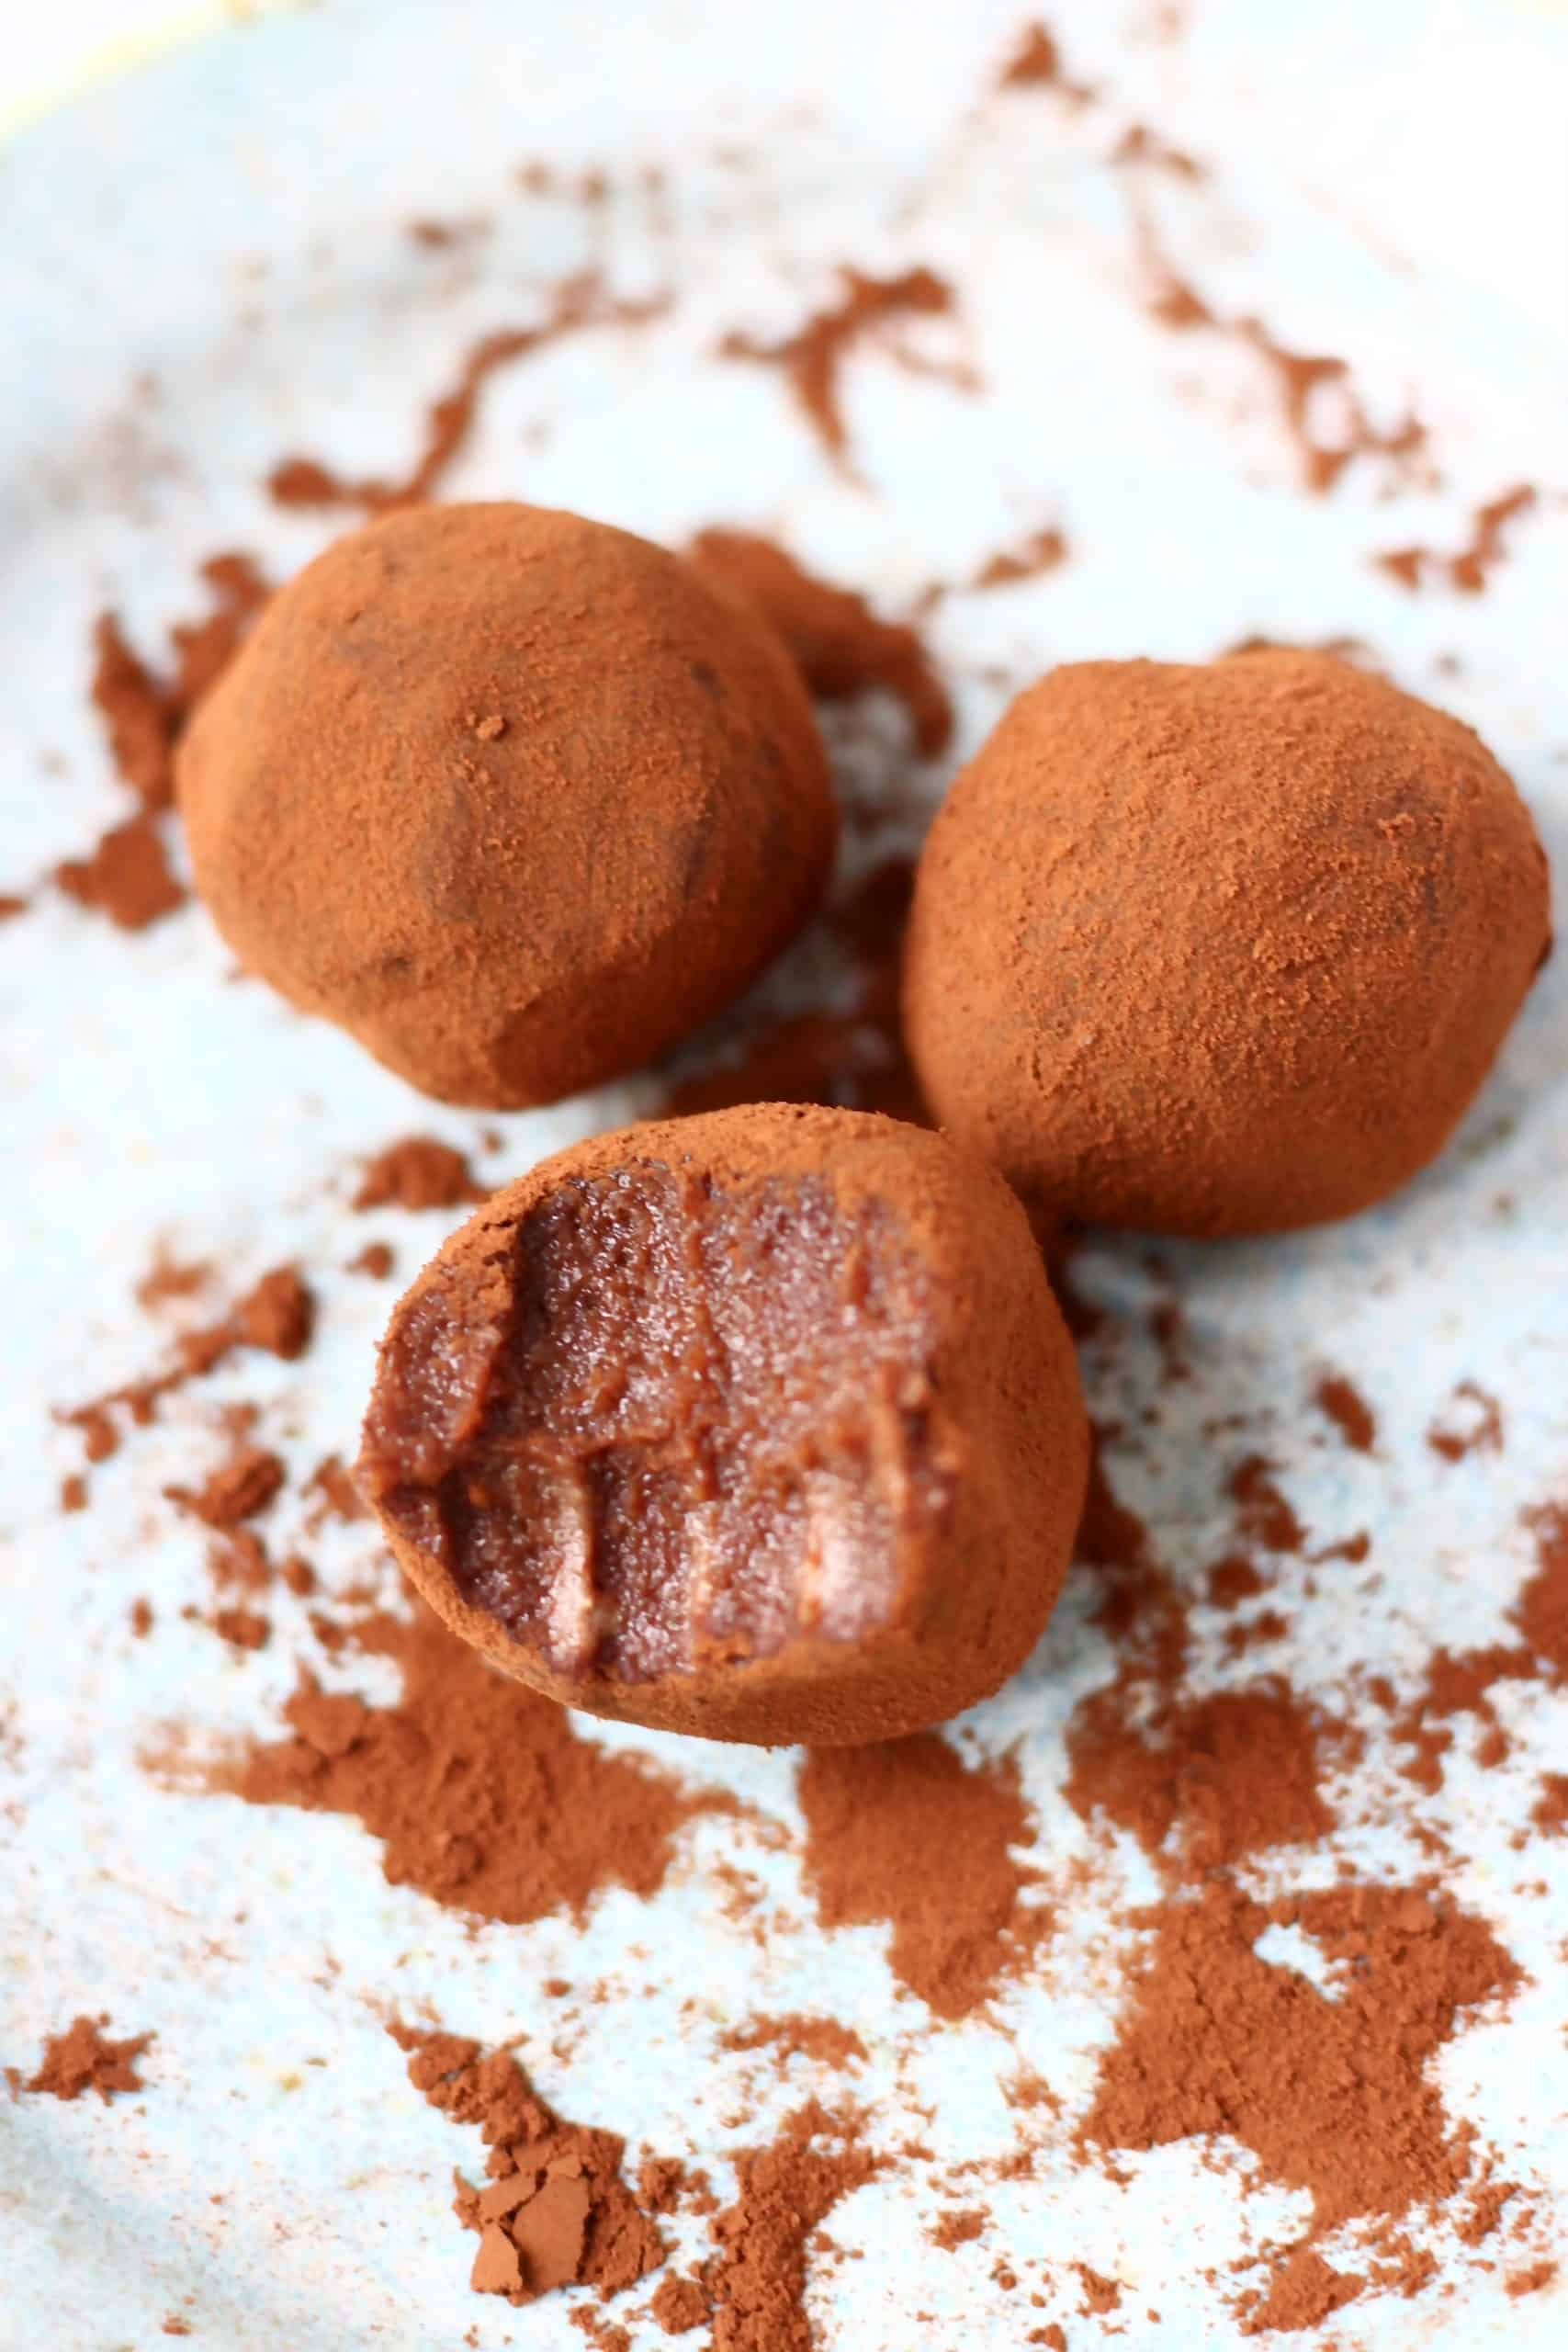 Three chocolate truffles dusted with cocoa powder with a bite taken out of one